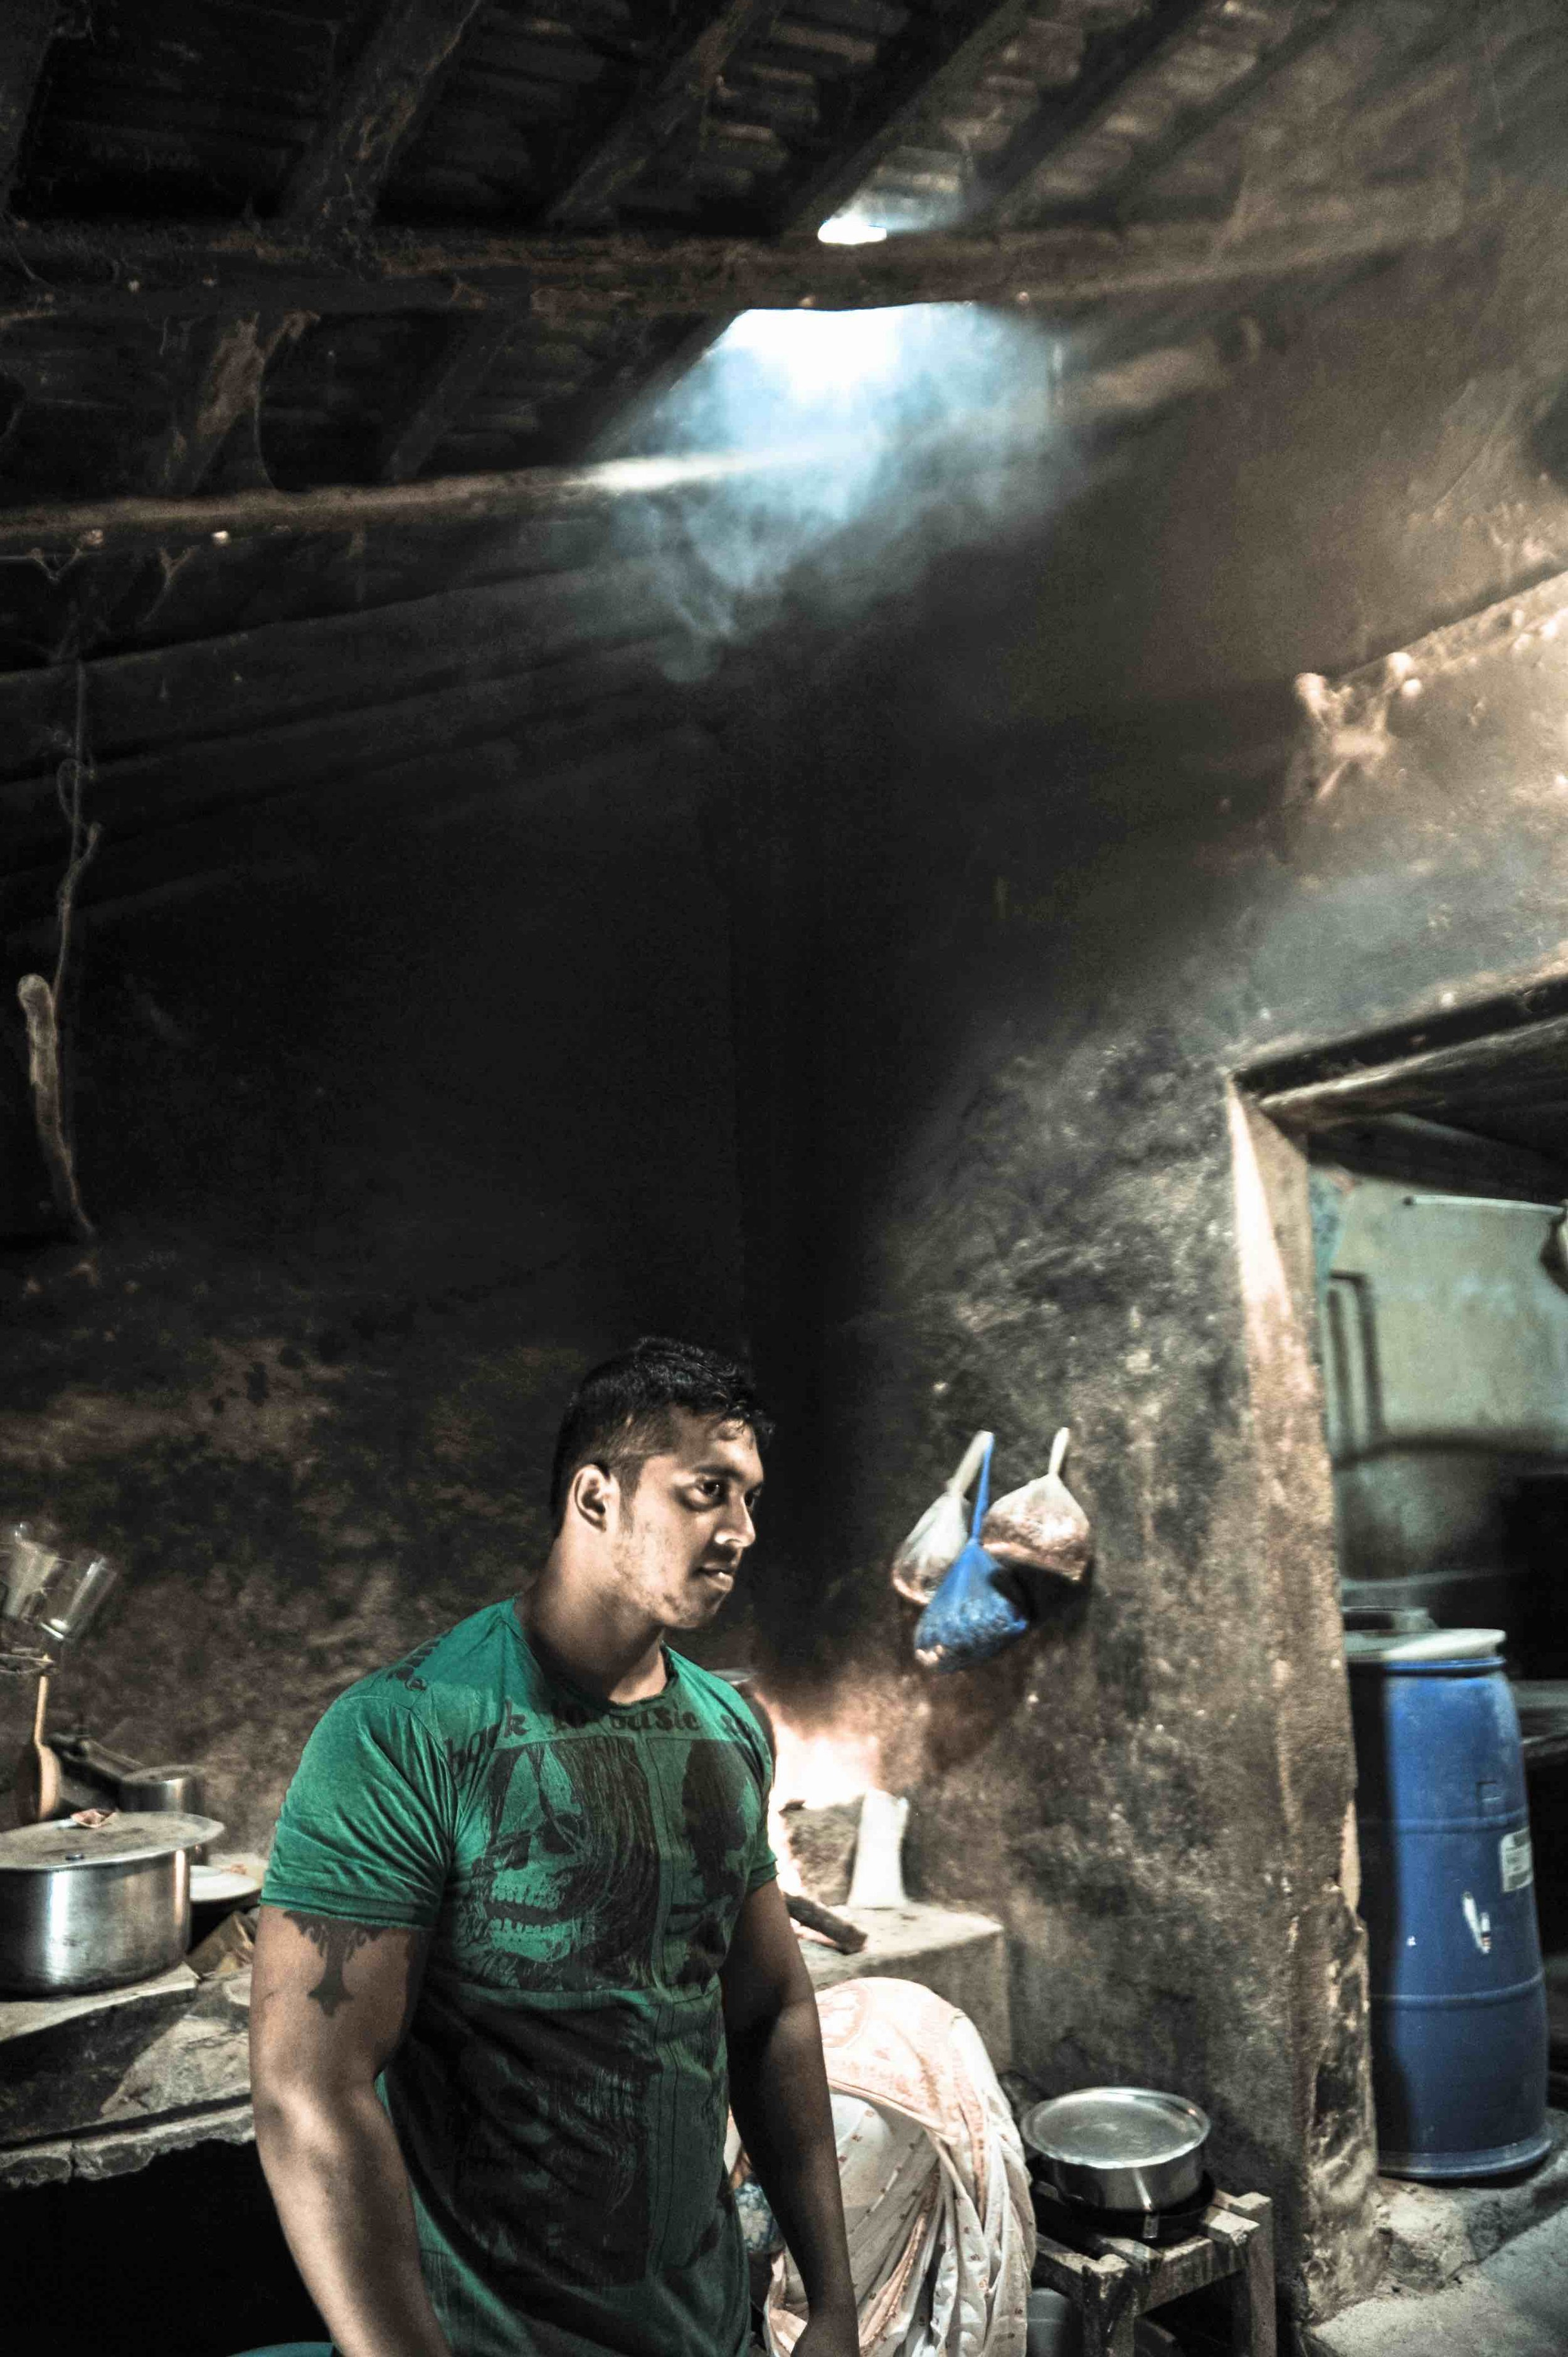 Most bakeries are family run businesses. Joe, a third generation baker, manages the bakery along with his father, taking care of stocks, shift timings and occasionally stepping in to manage the oven when they are short staffed.  Shot in Pereira Bakery, Caranzalem, 2014